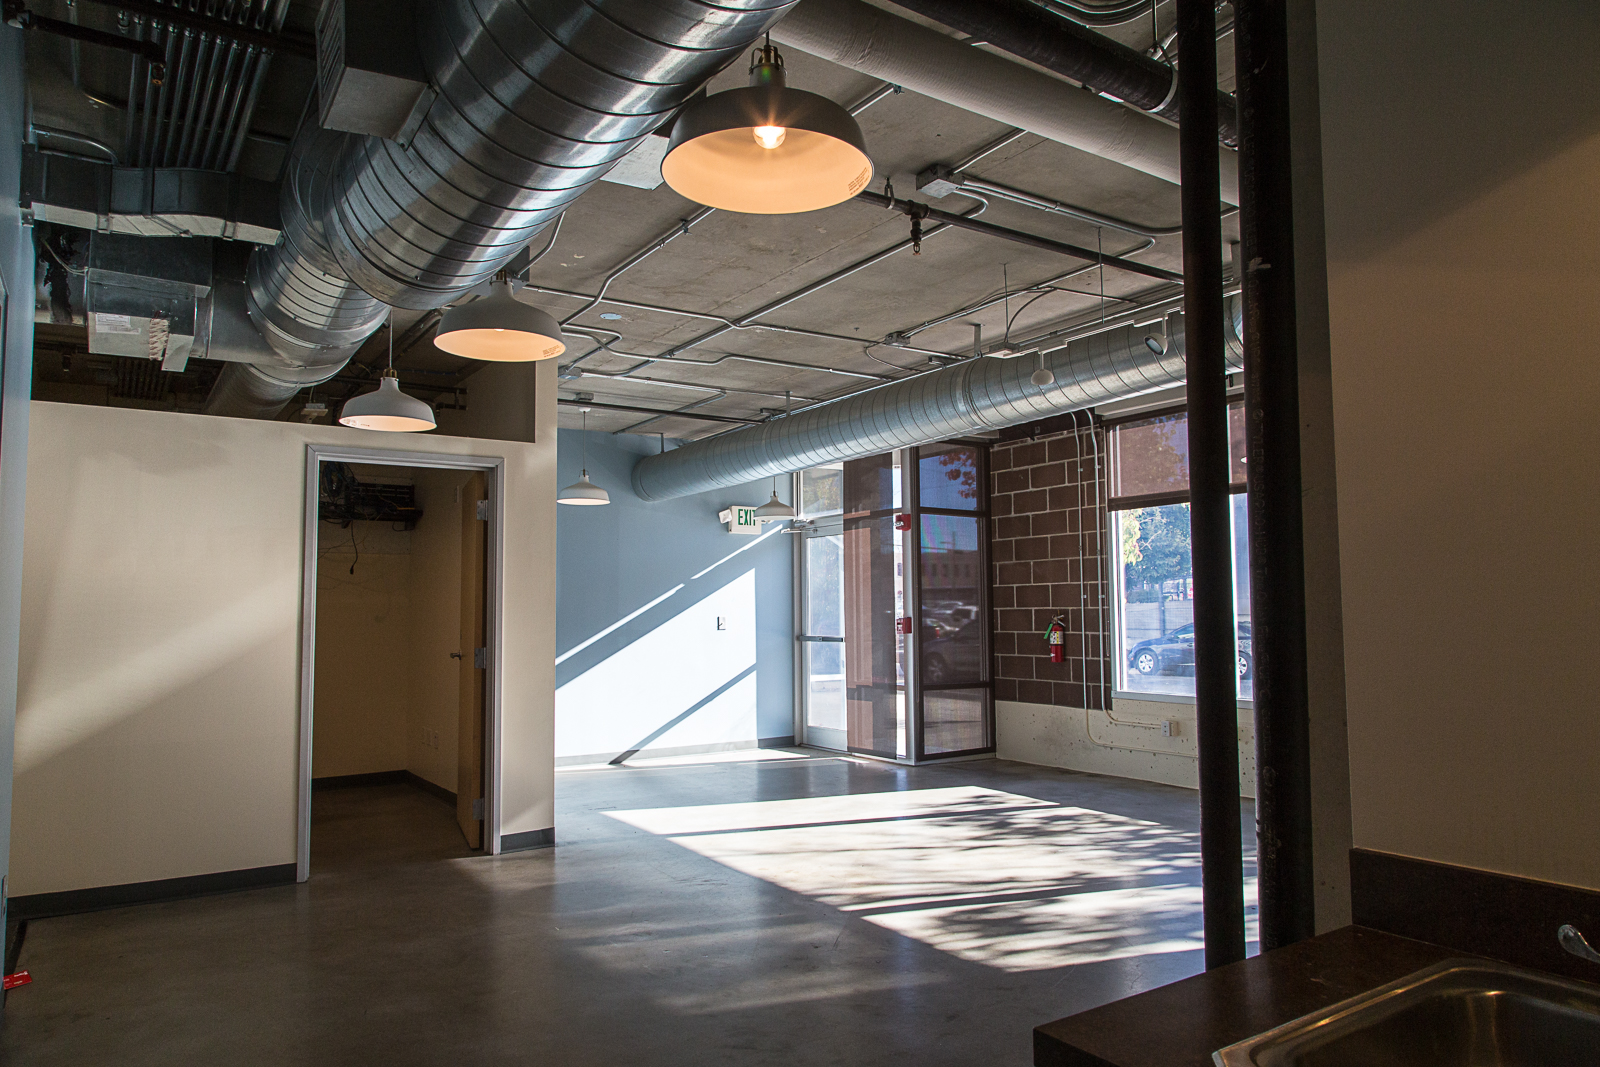 2330 BROADWAY, SUITE 107 - Available January 2019$25.00 Full Service1,169 RSFIncludes free garage parking